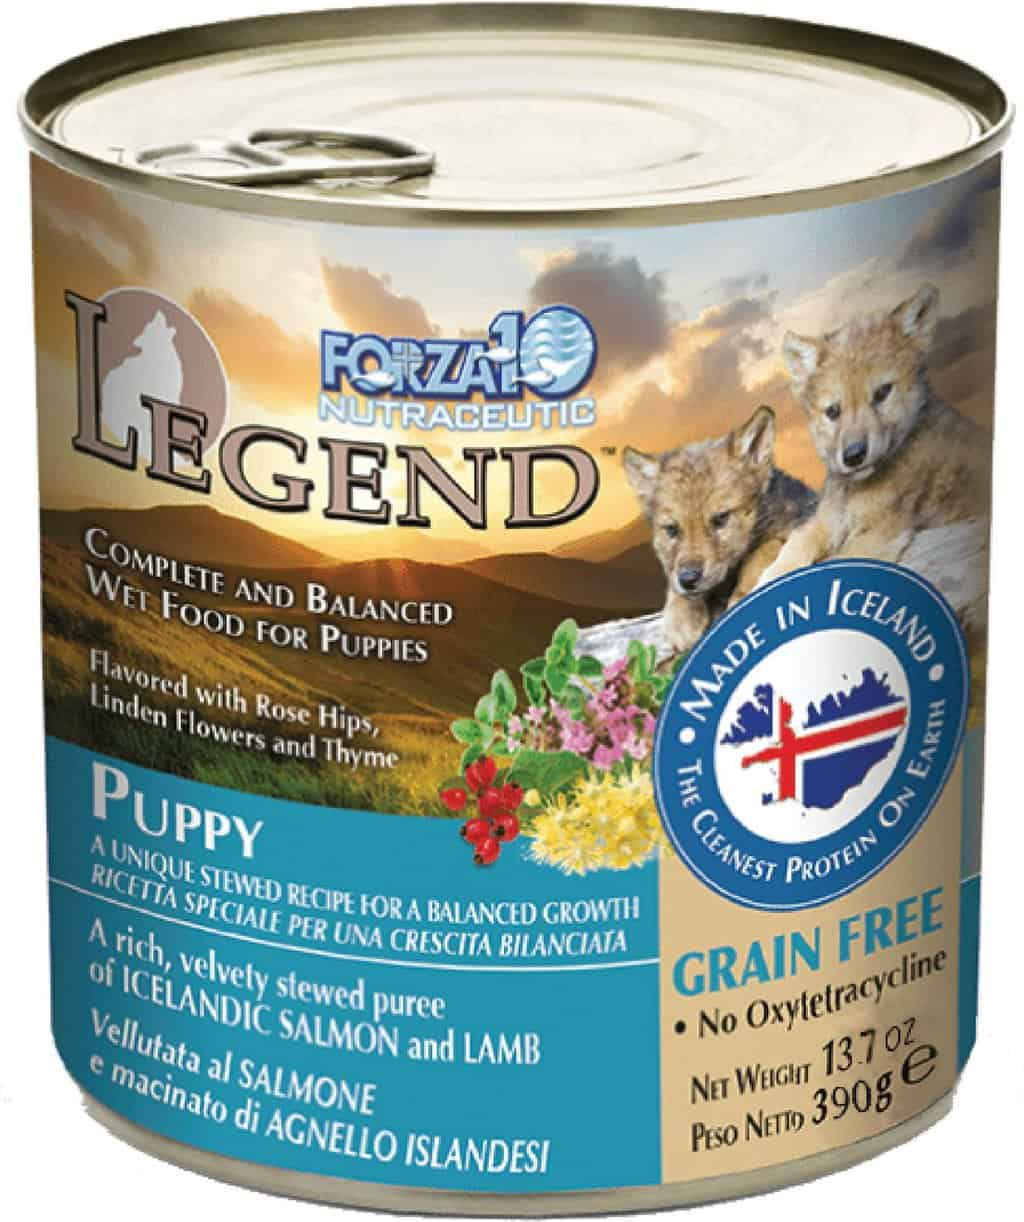 Forza10 Dog Food Review [year]: Best Natural Alternative to Medicine? 31